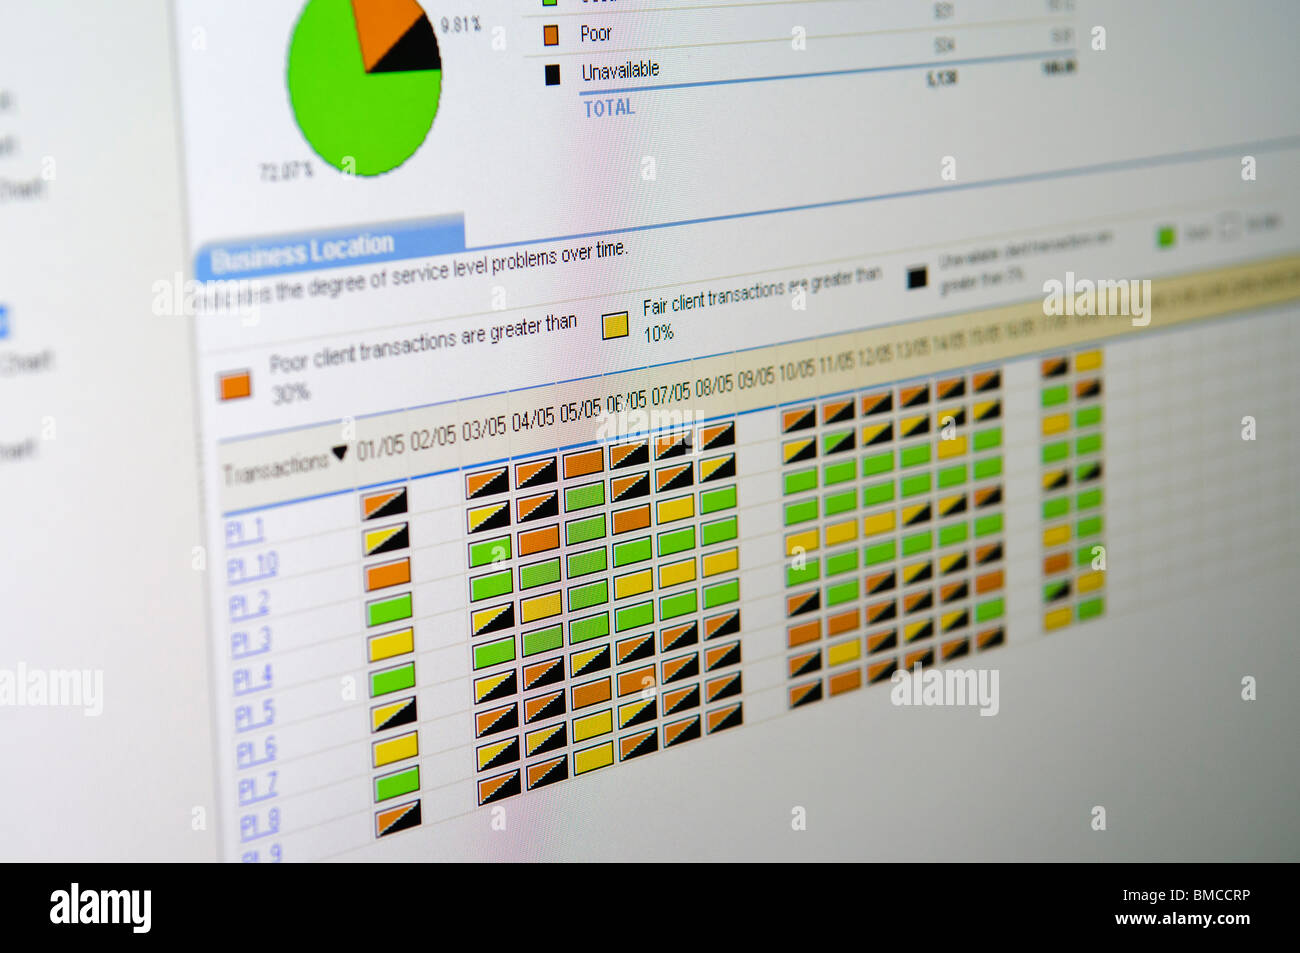 Screenshot of a network and application monitoring program showing system availability - Stock Image